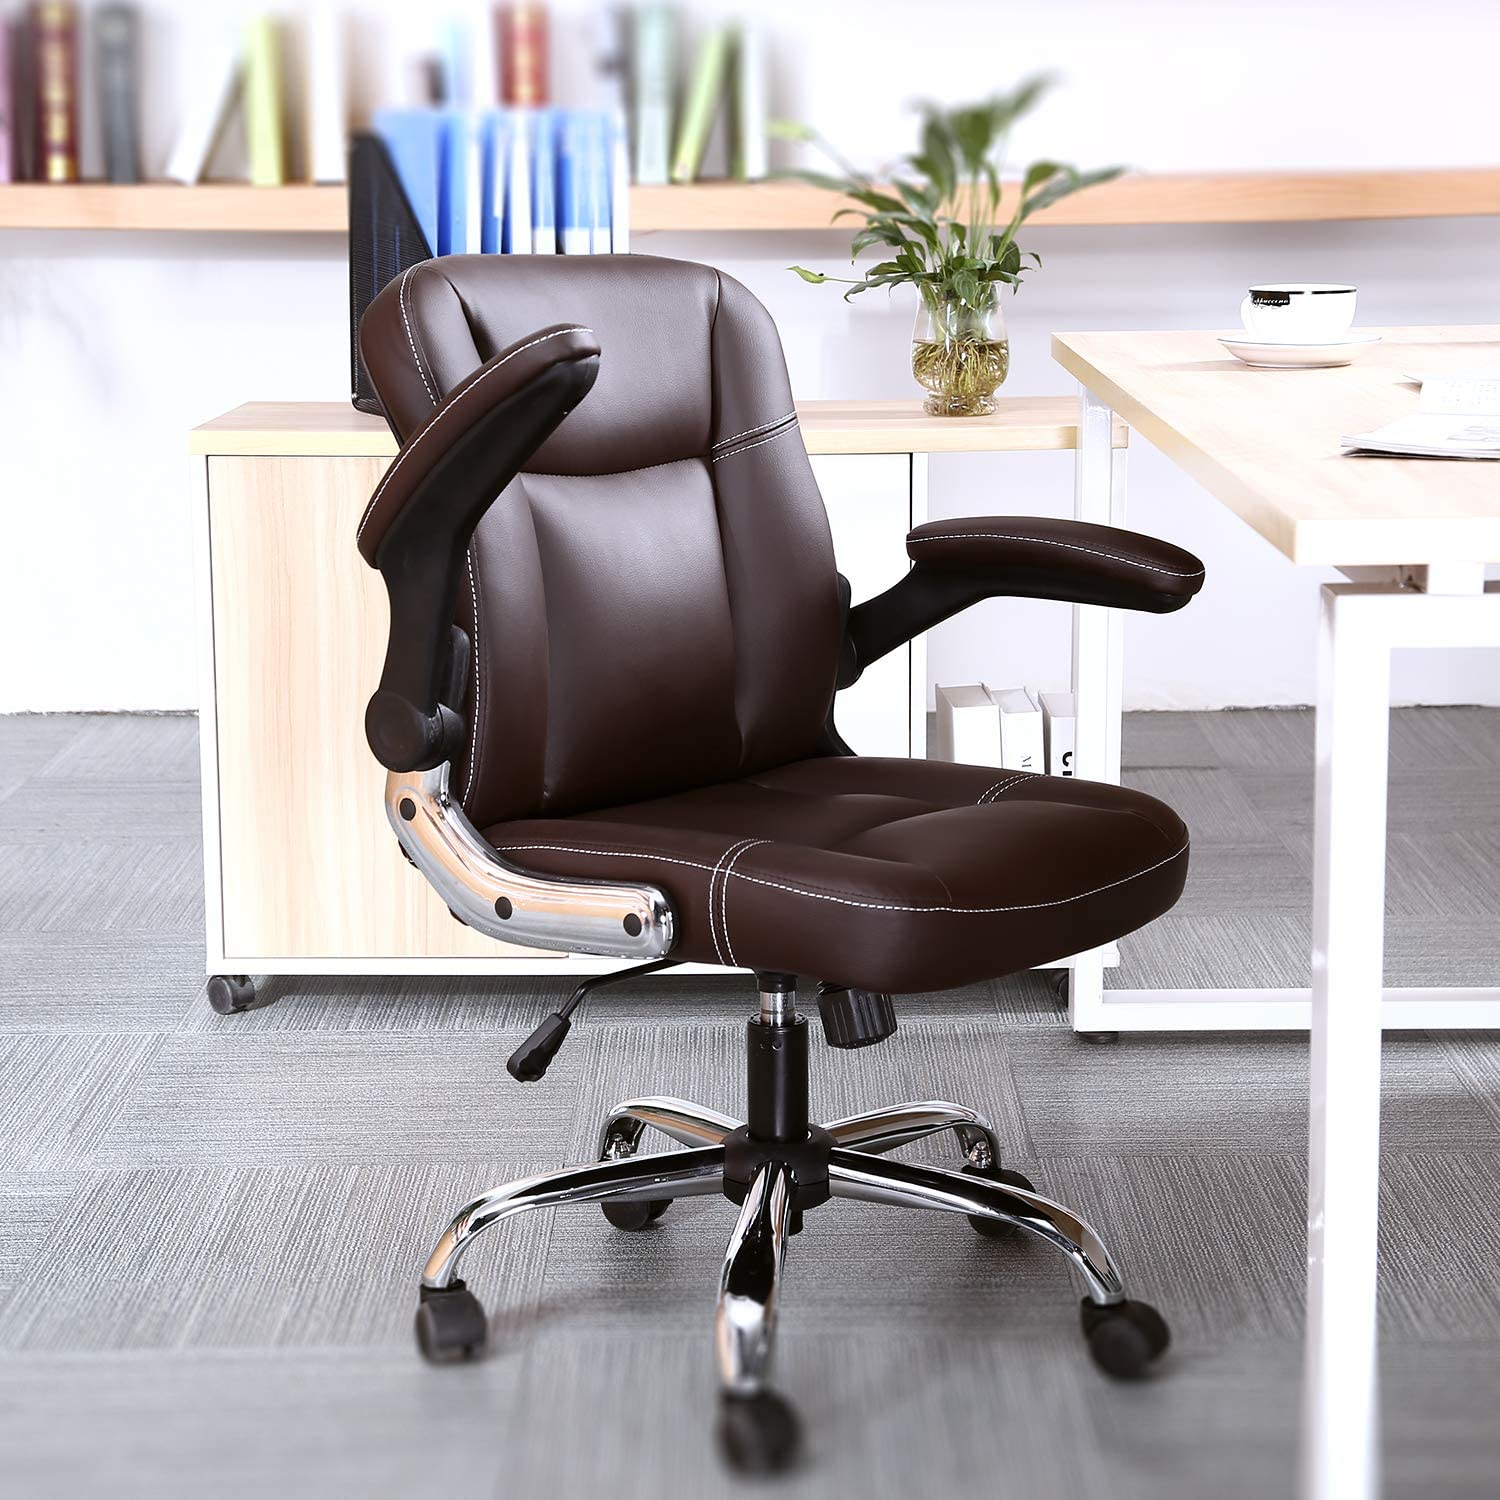 SP Mid-Back Ergonomic Office Faux Executive Com Max 56% OFF Weekly update PU Chair Leather